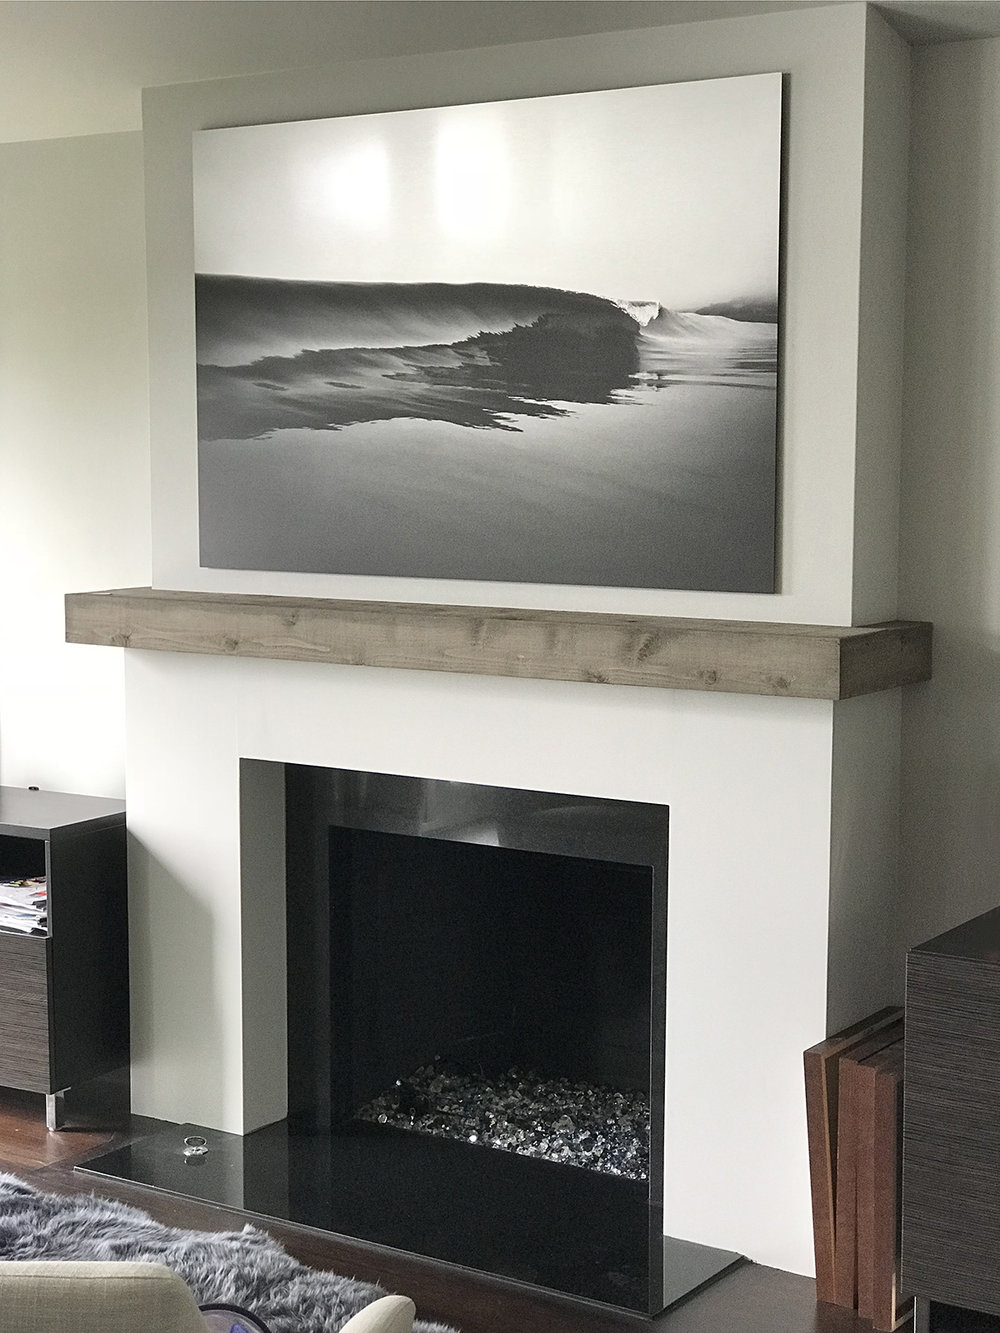 "Custom 60""x40"" black and white print on brushed aluminum for the Goldman family. These prints are really interesting in the way the highlights reflect, and they look different as the light changes during the day."